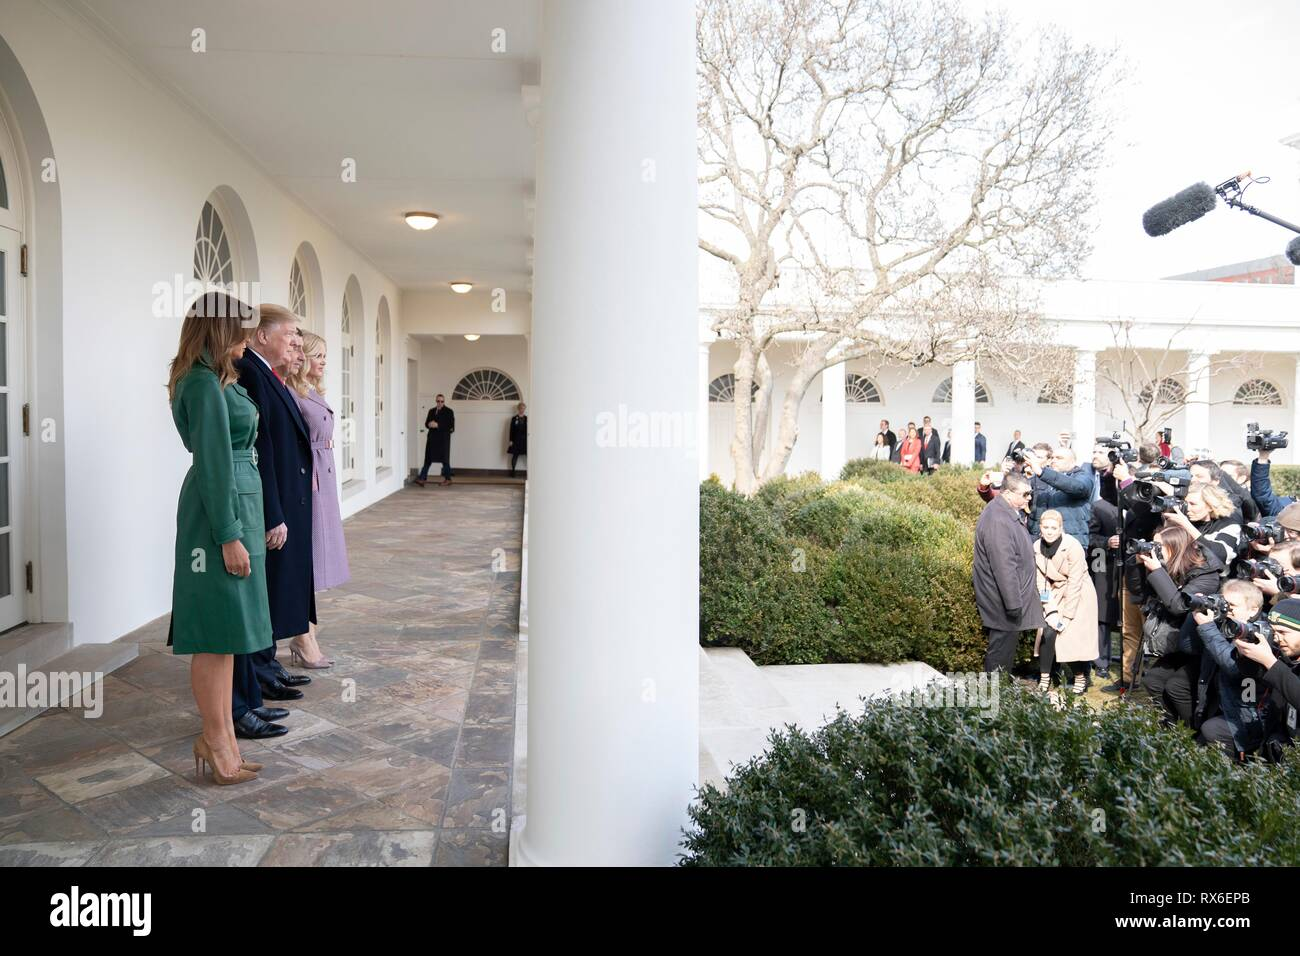 U.S President Donald Trump and First Lady Melania Trump stand together with Czech Prime Minister Andrej Babis and his wife Monika Babisova on the Colonnade of the White House March 7, 2019 in Washington, DC. - Stock Image